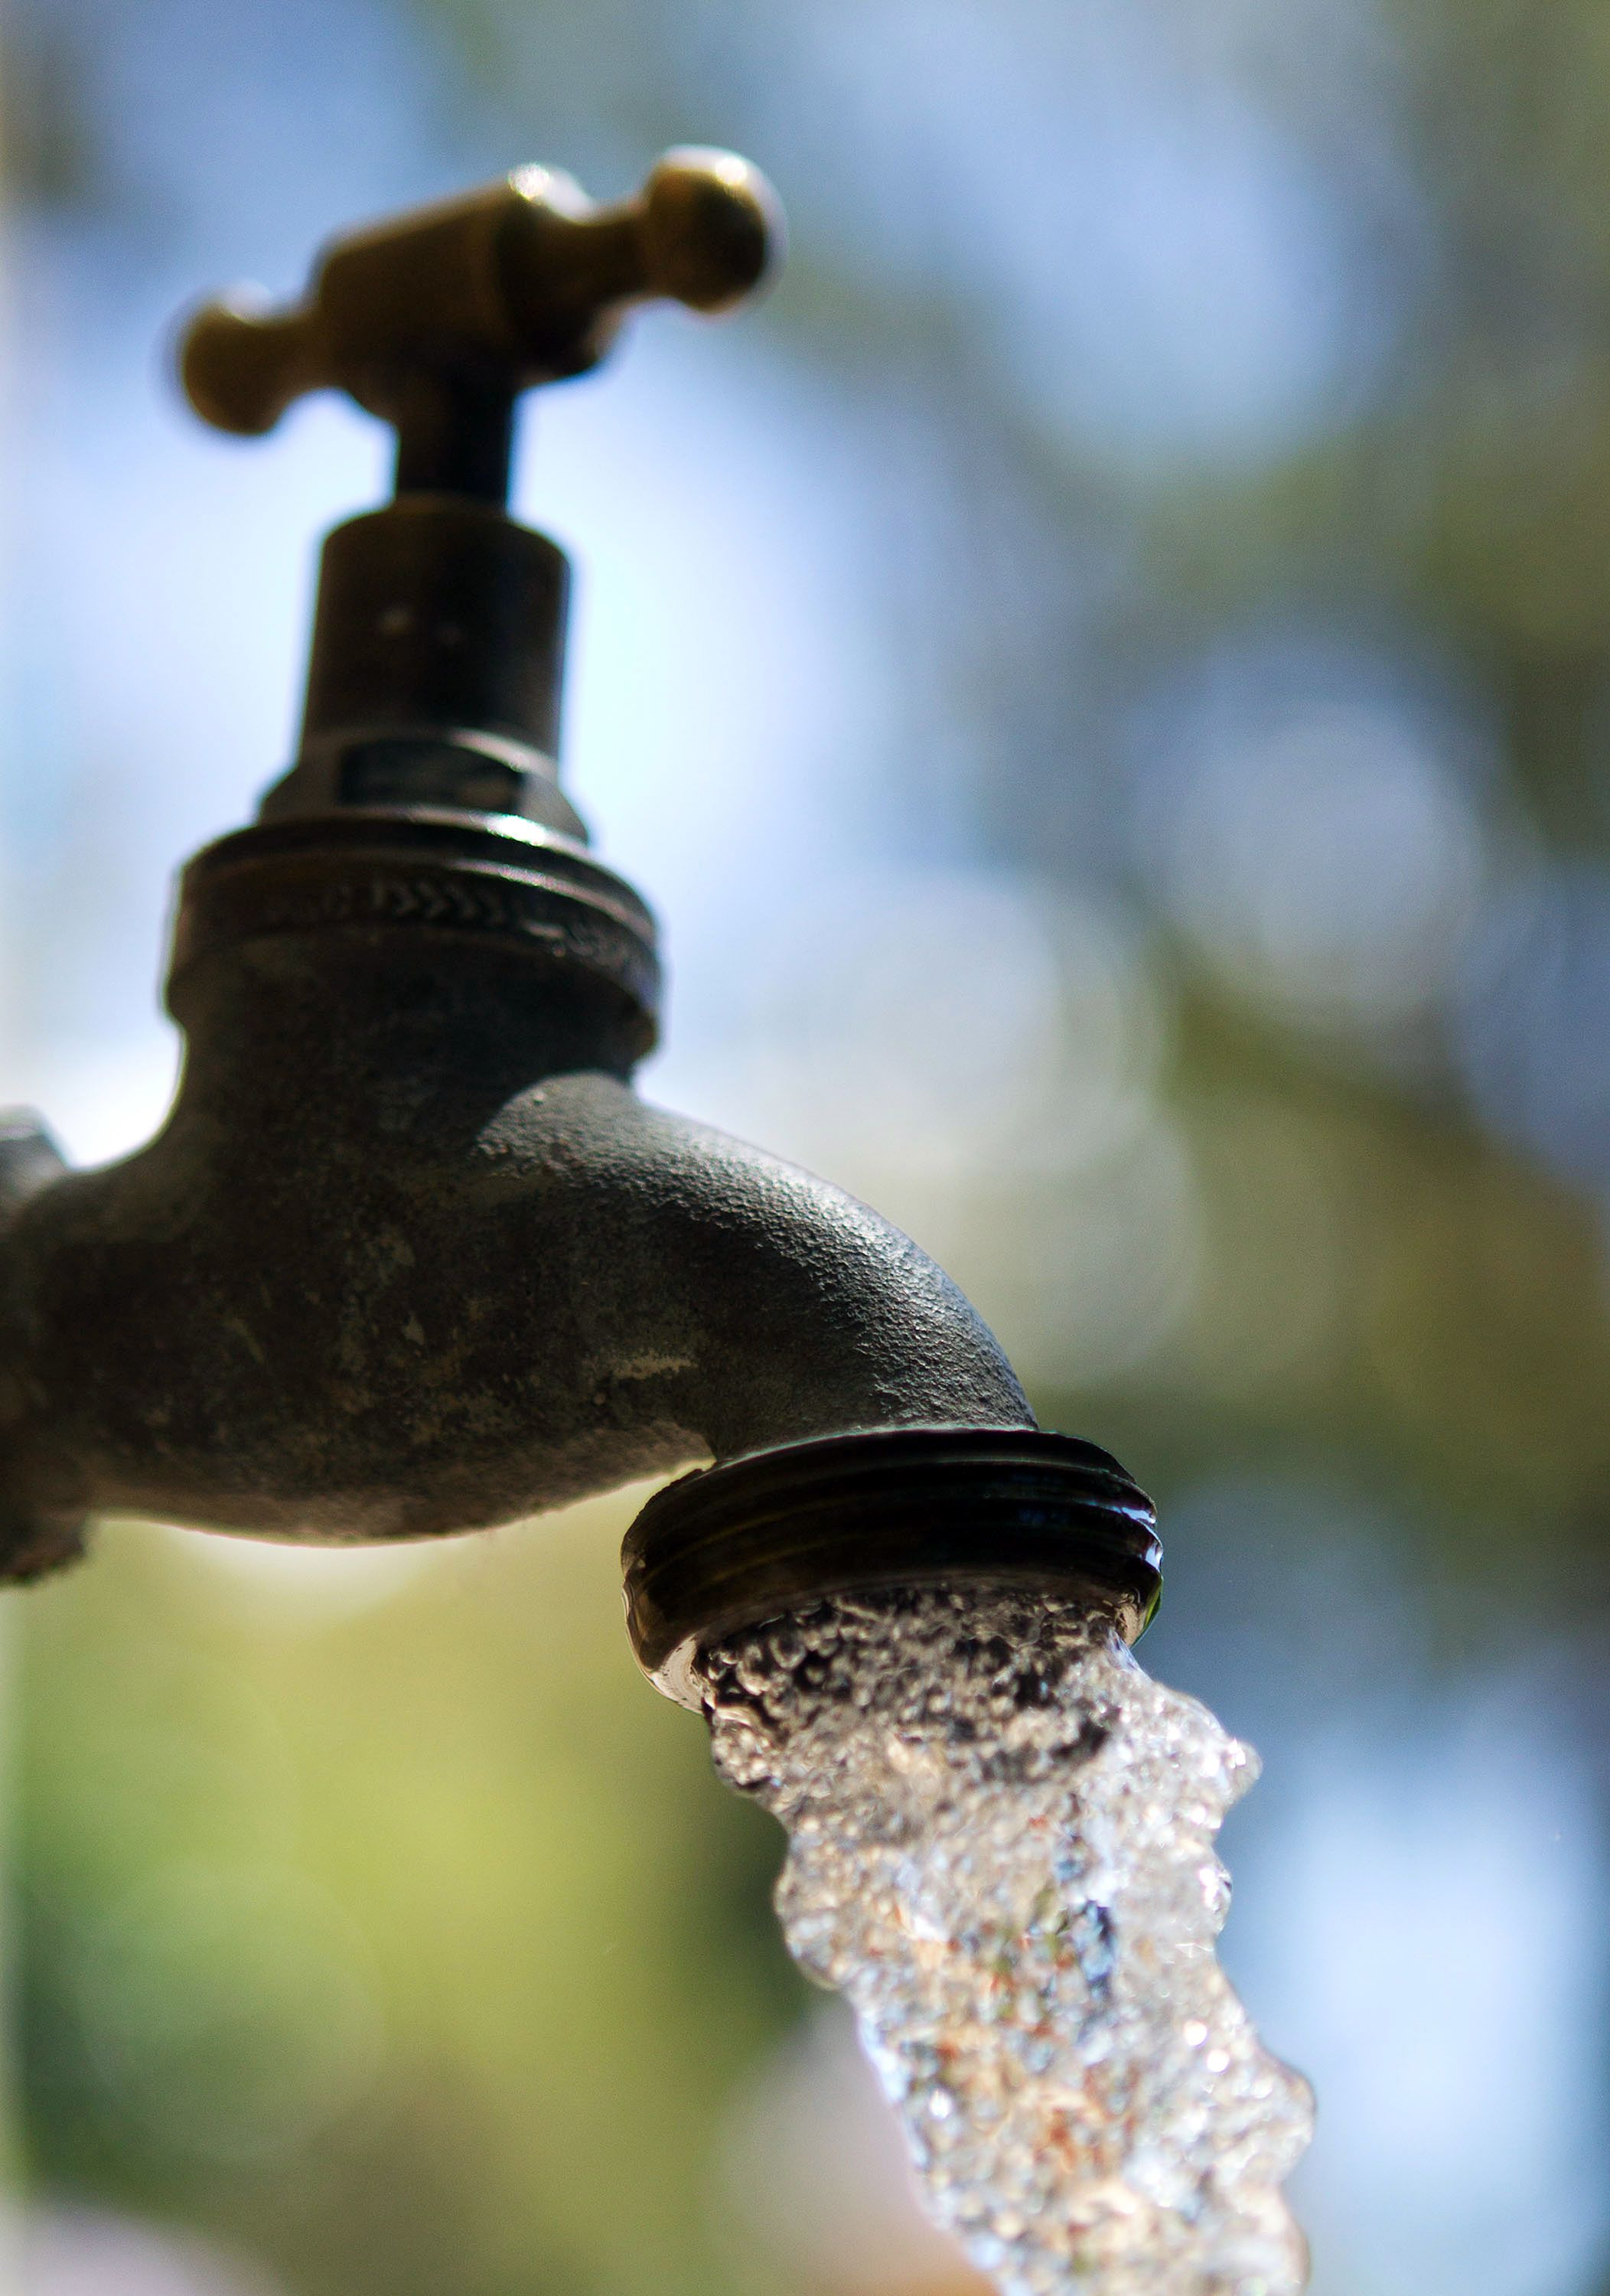 A homeowners guide to valves plumbing valves